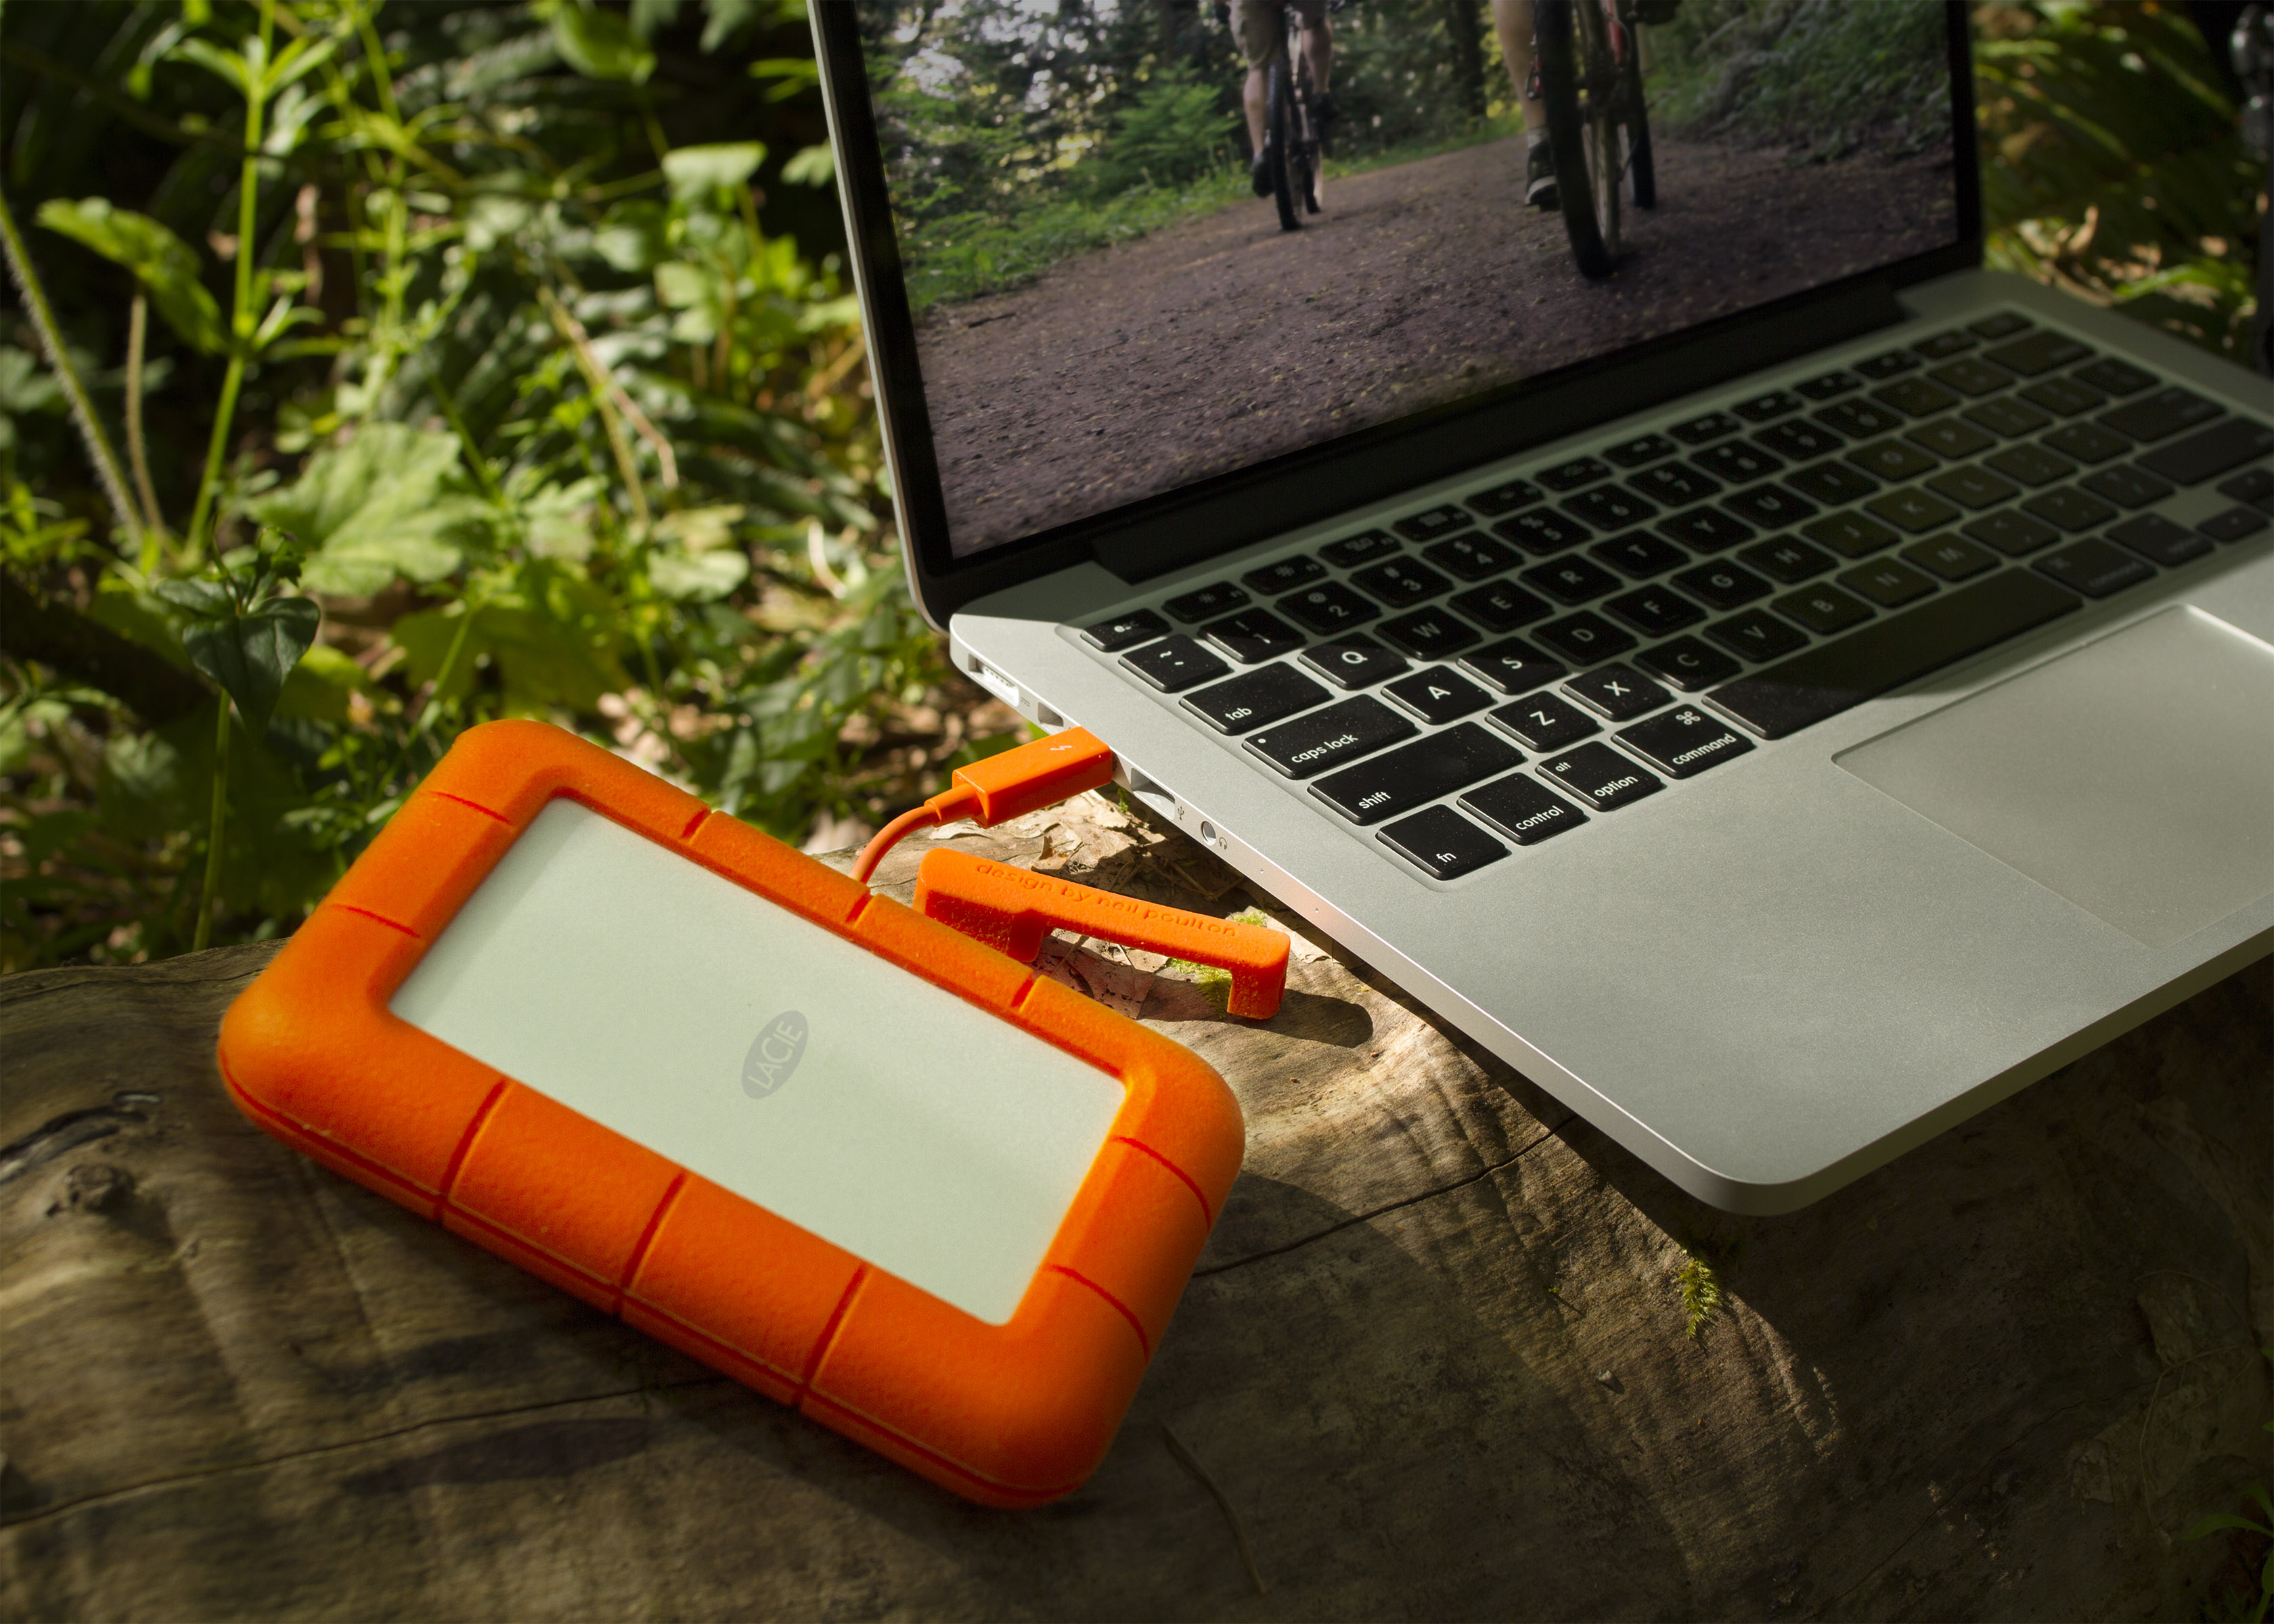 rugged-use-case-outdoor-mbp-110x110.png